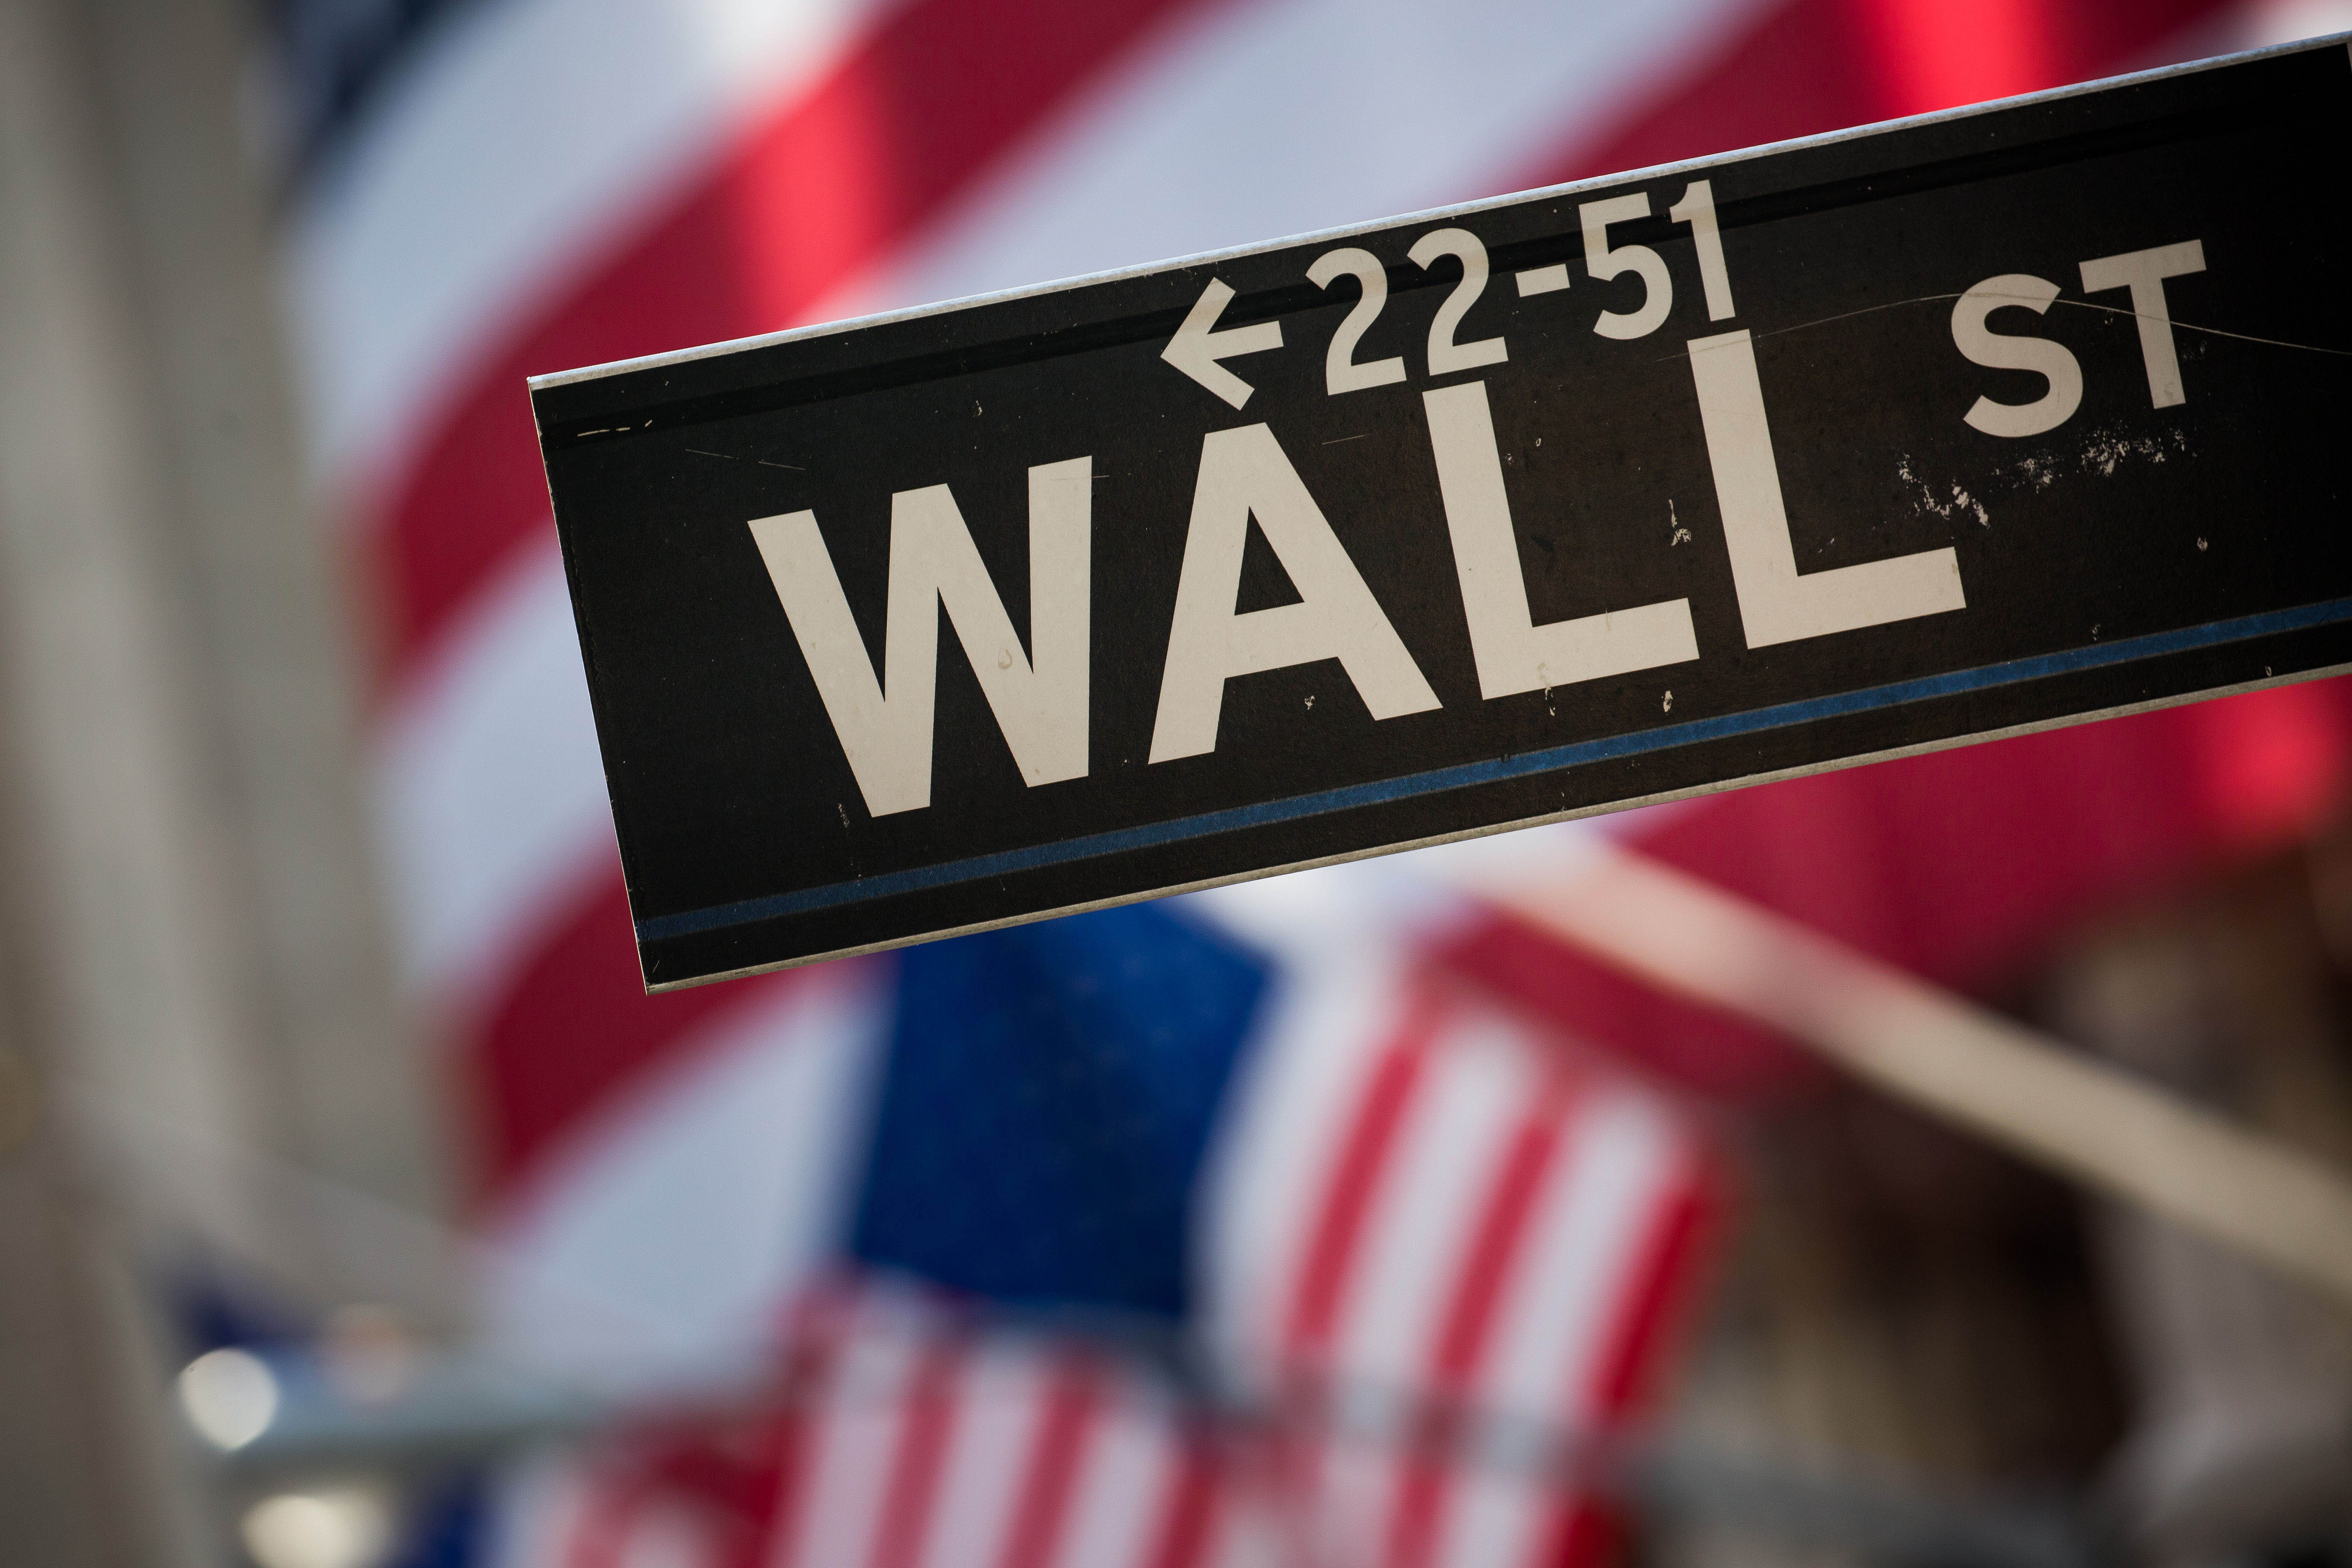 A Wall Street sign is displayed in front of the New York Stock Exchange in New York. (Bloomberg)